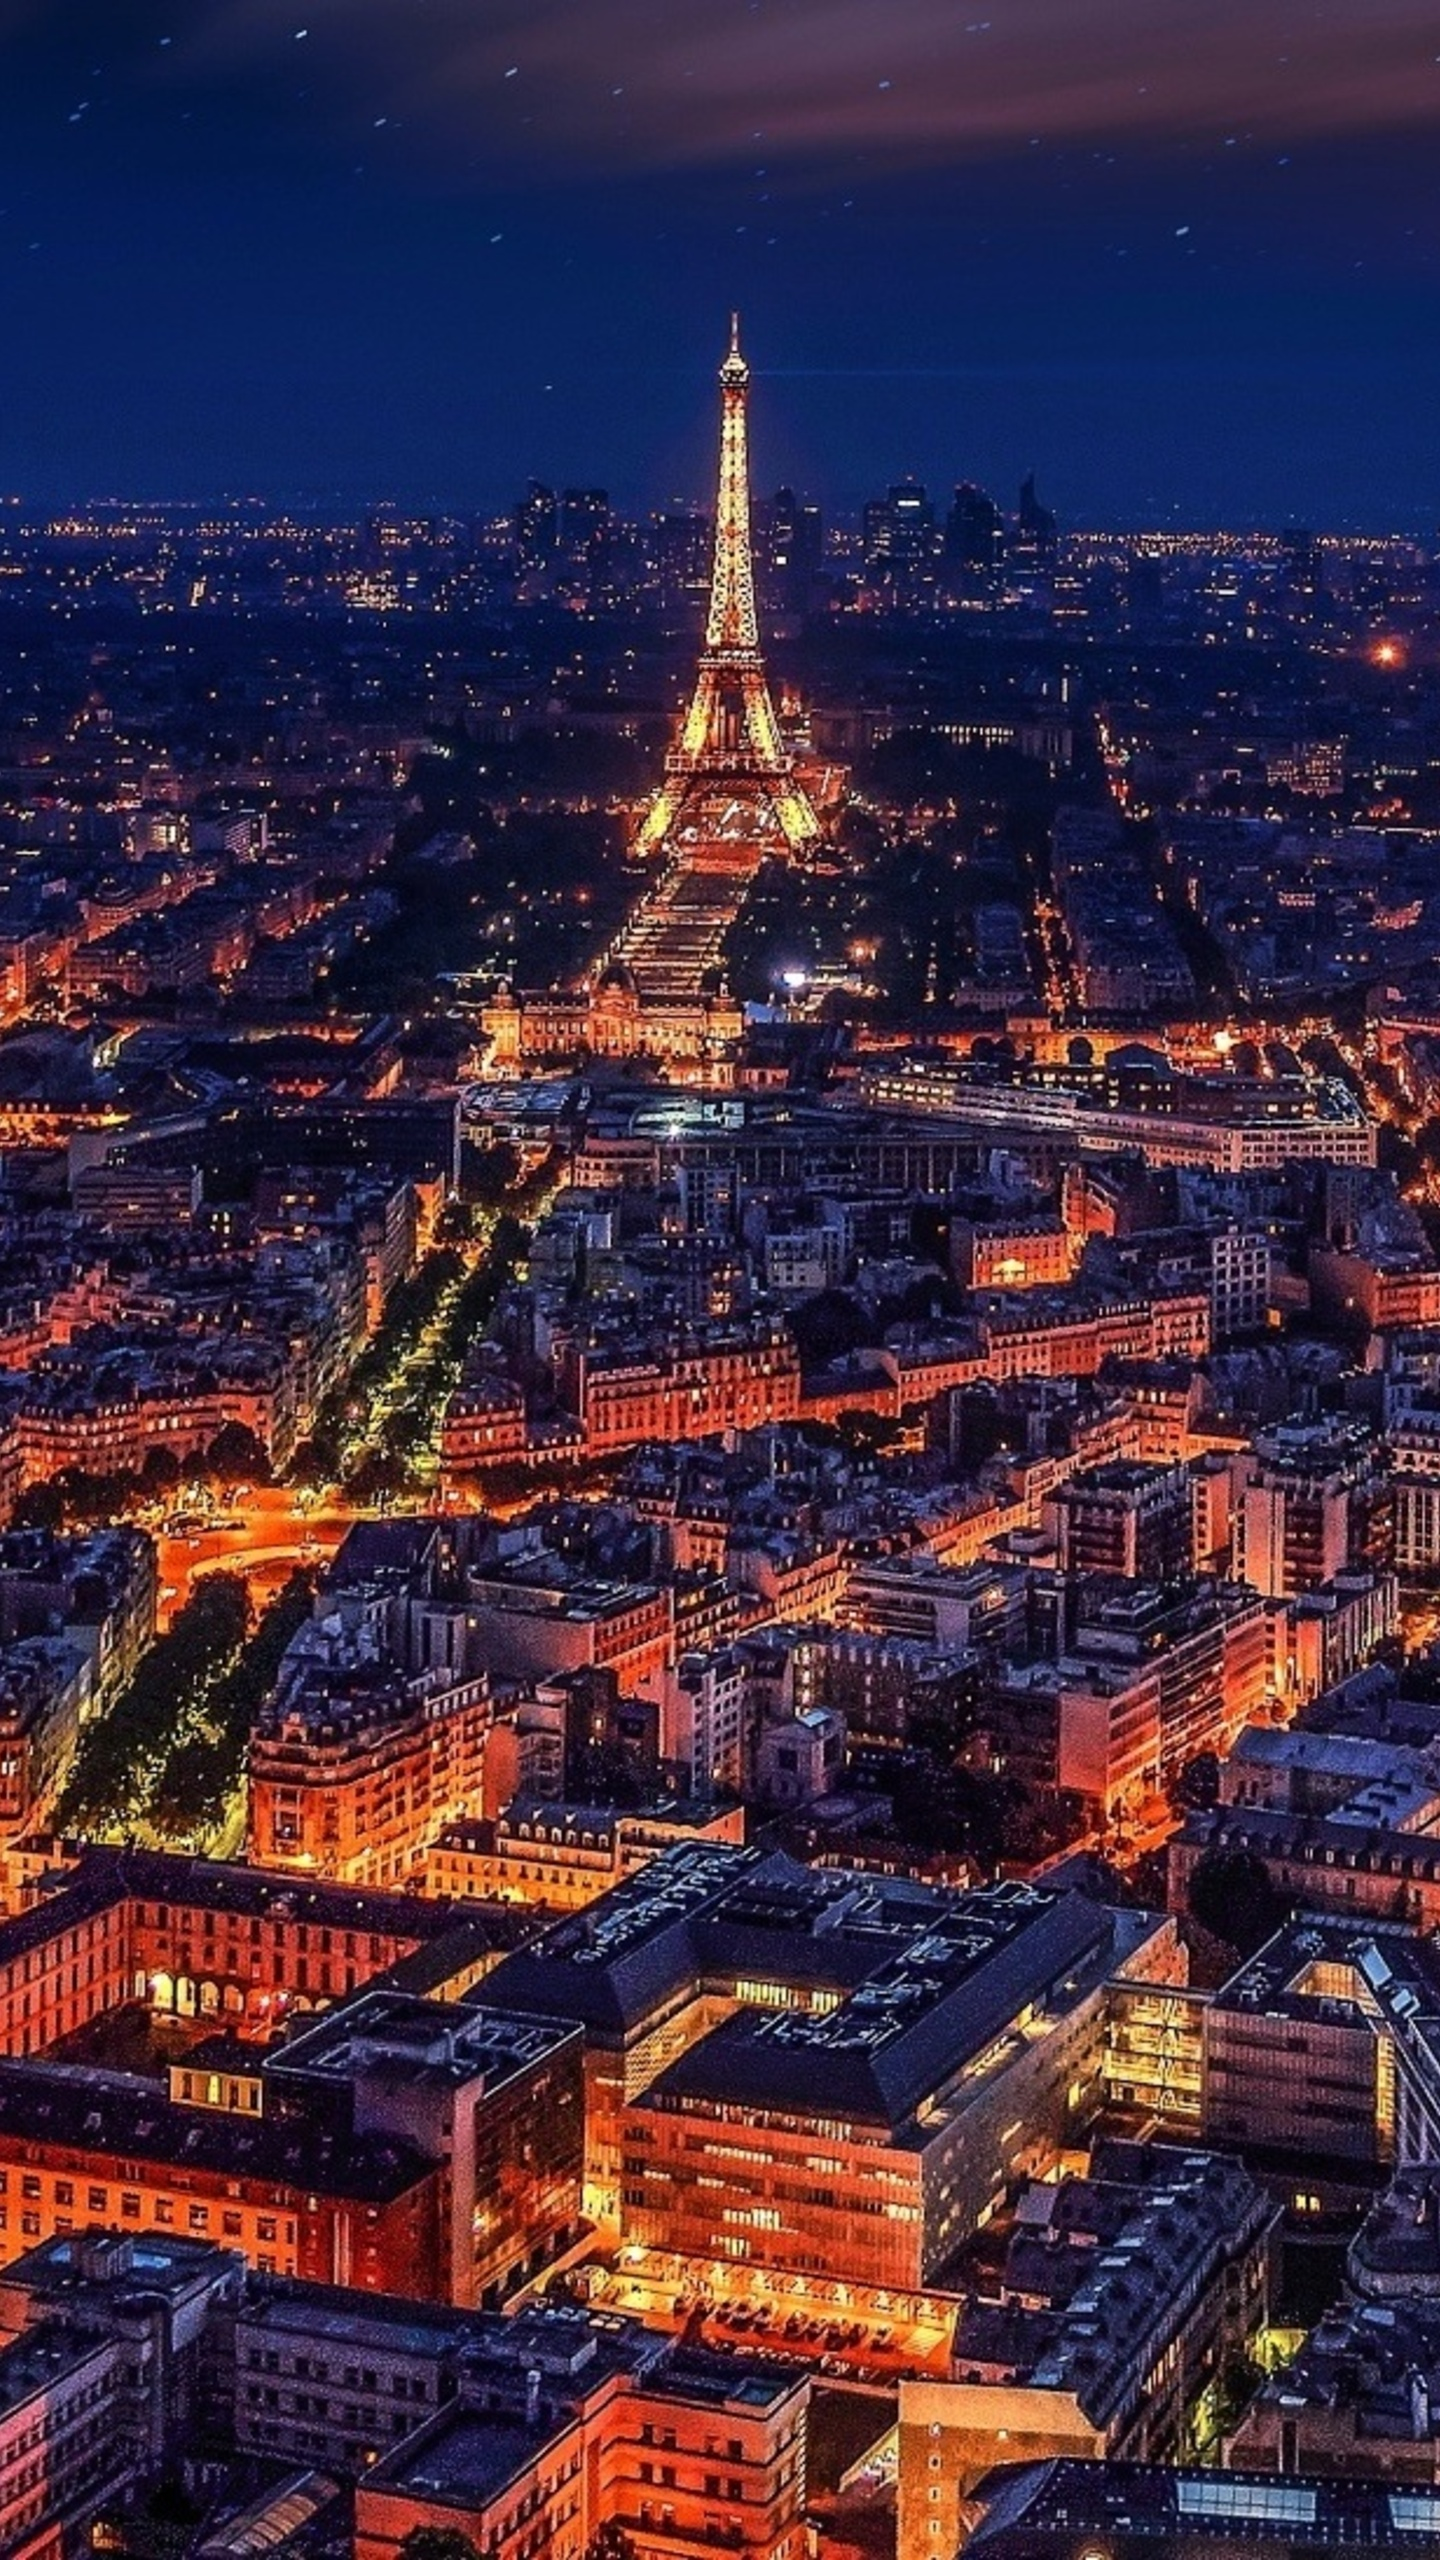 1440x2560 paris france eiffel tower night samsung galaxy s6,s7